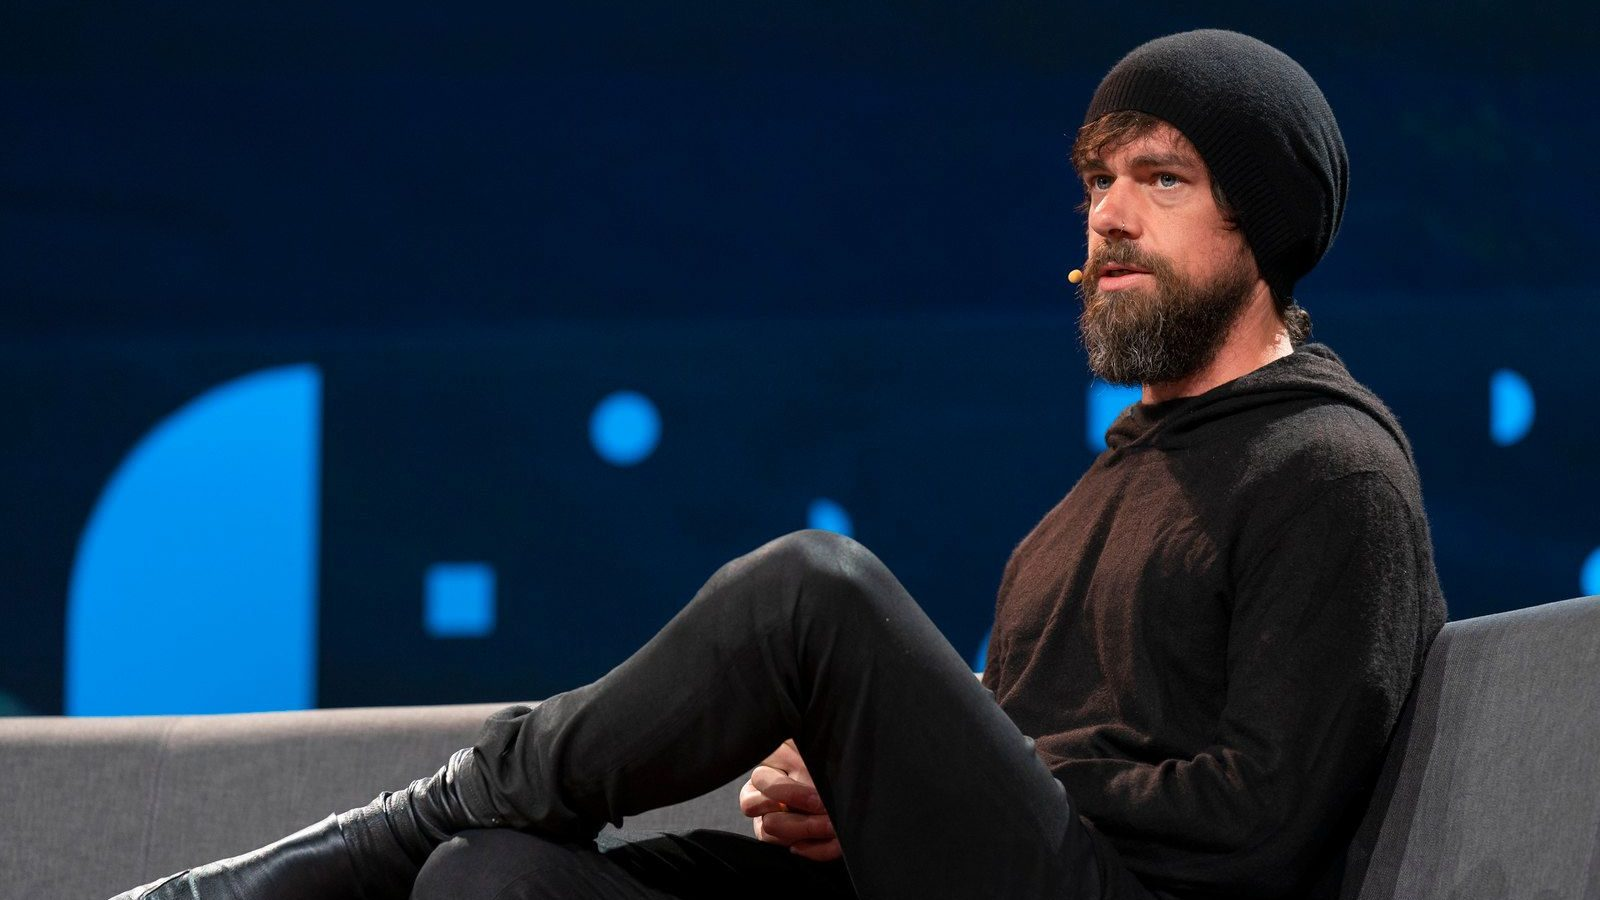 Jack Dorsey, Twitter CEO, says he'll be relocating to Africa in 2020